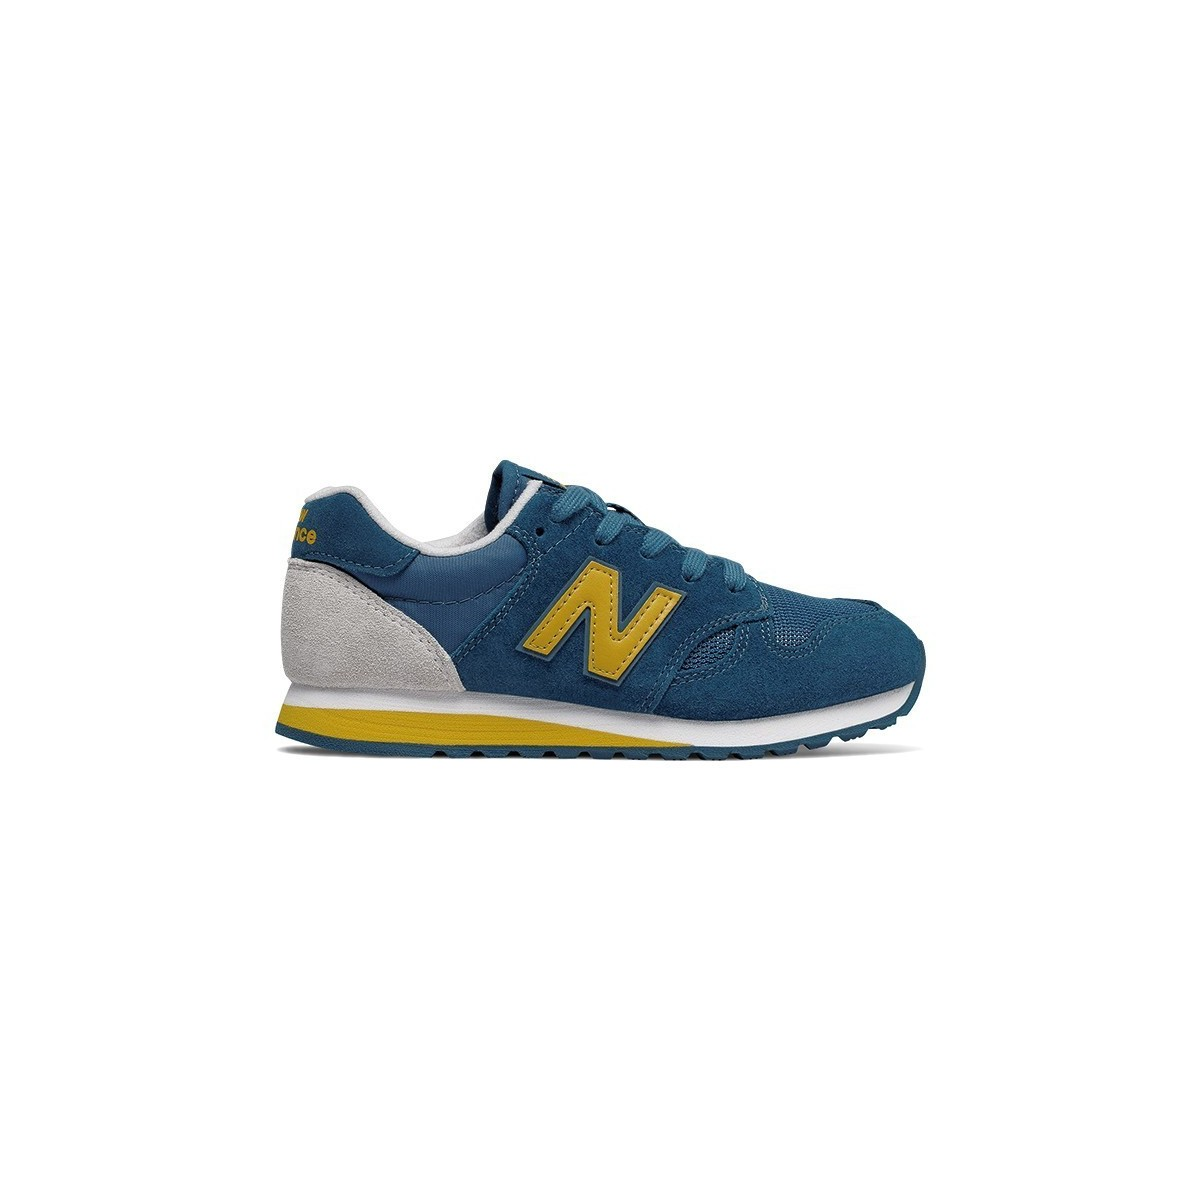 Basket New Balance KL520 lacets blue/yellow